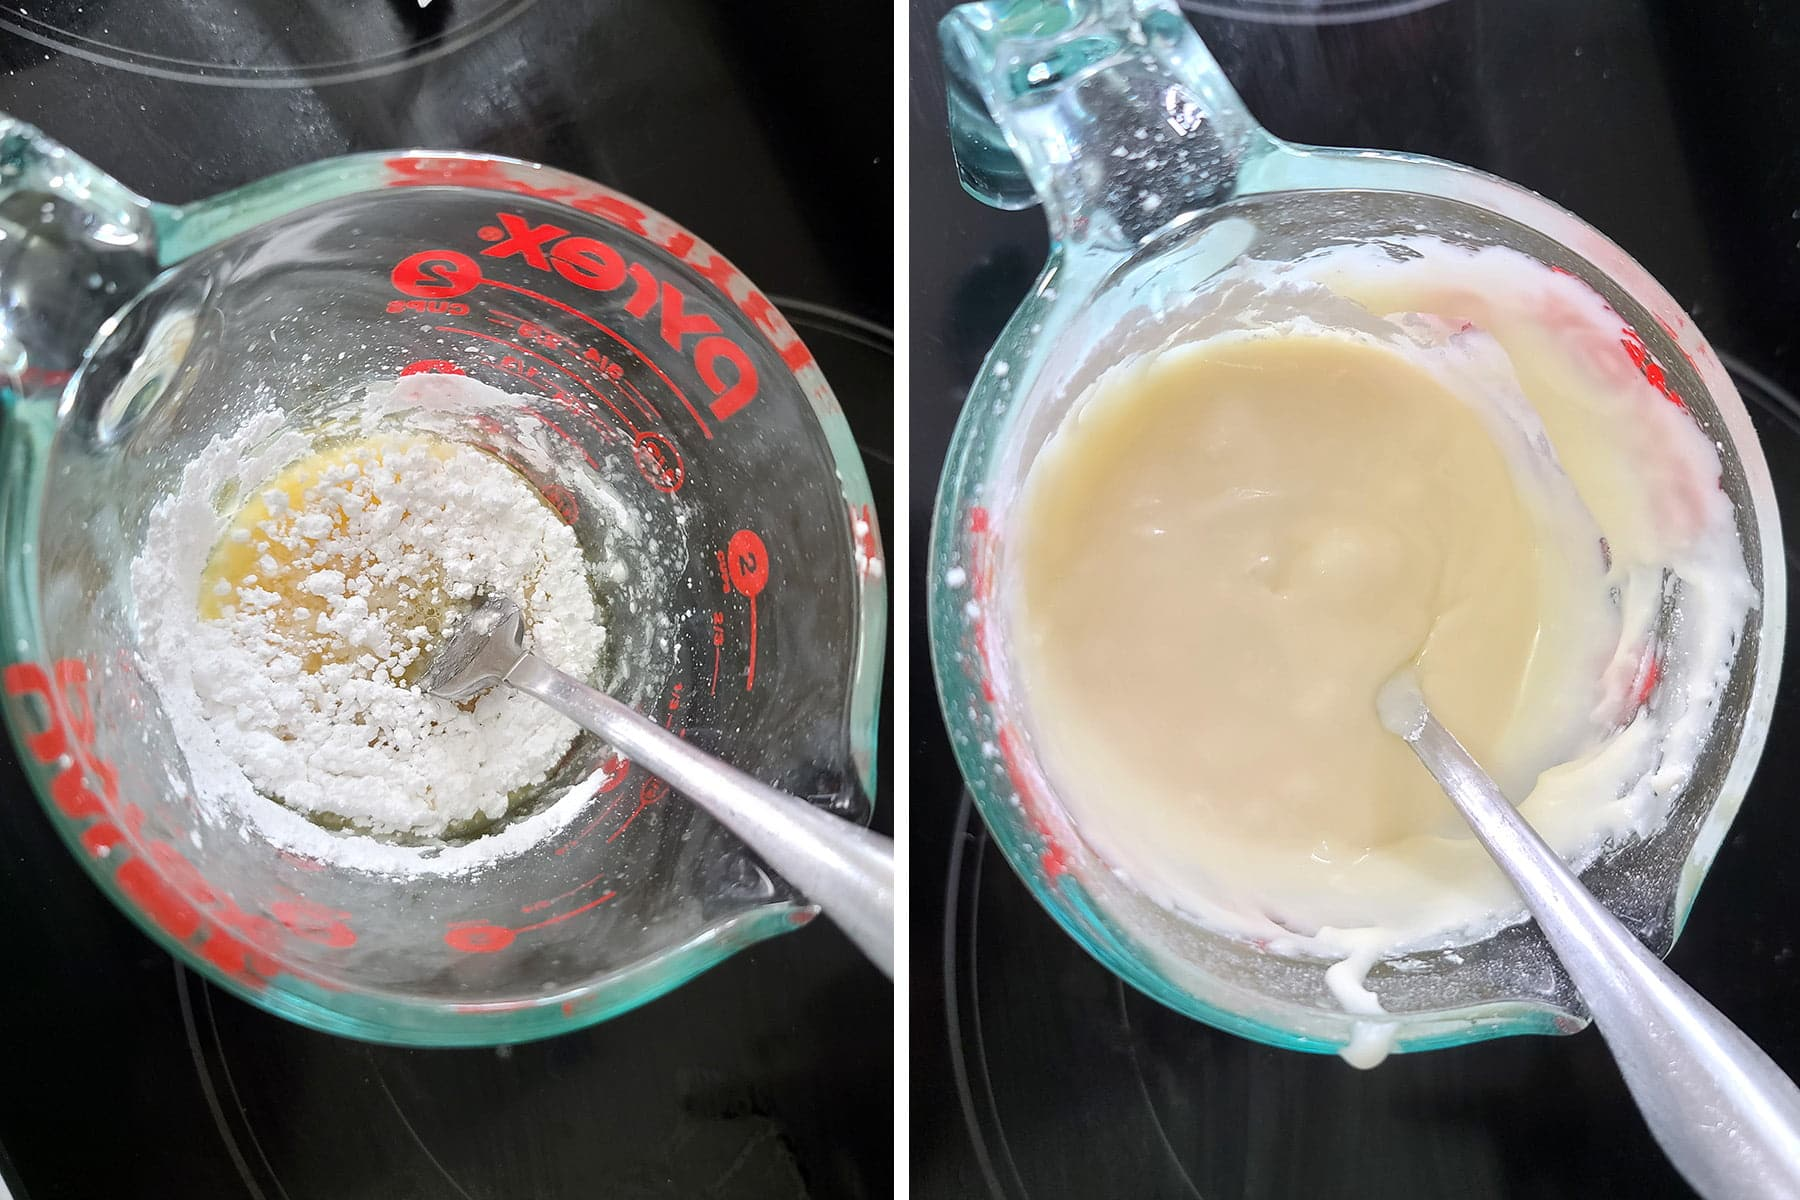 A two part compilation image showing a glass measuring cup with orange glaze being mixed in it. First as a chunky miixture, and finally as a smooth frosting.